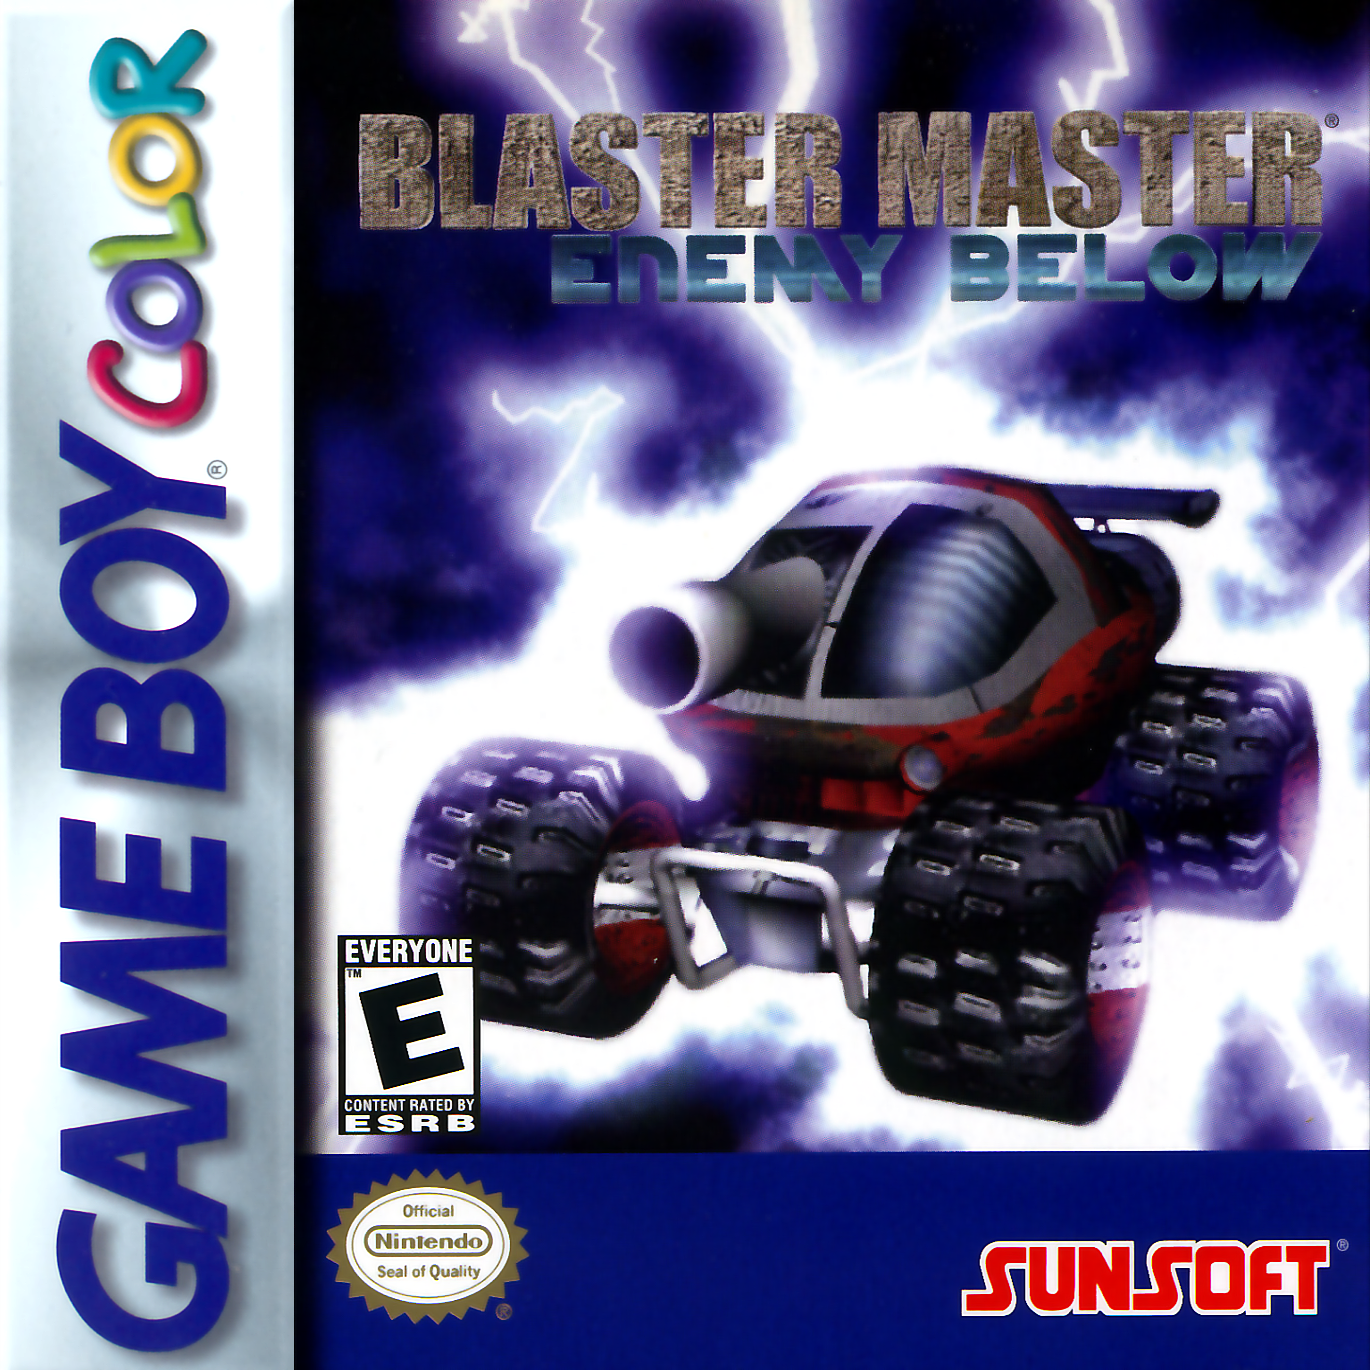 Game boy color online games - Blaster Master Enemy Below Nintendo Game Boy Color Cover Artwork